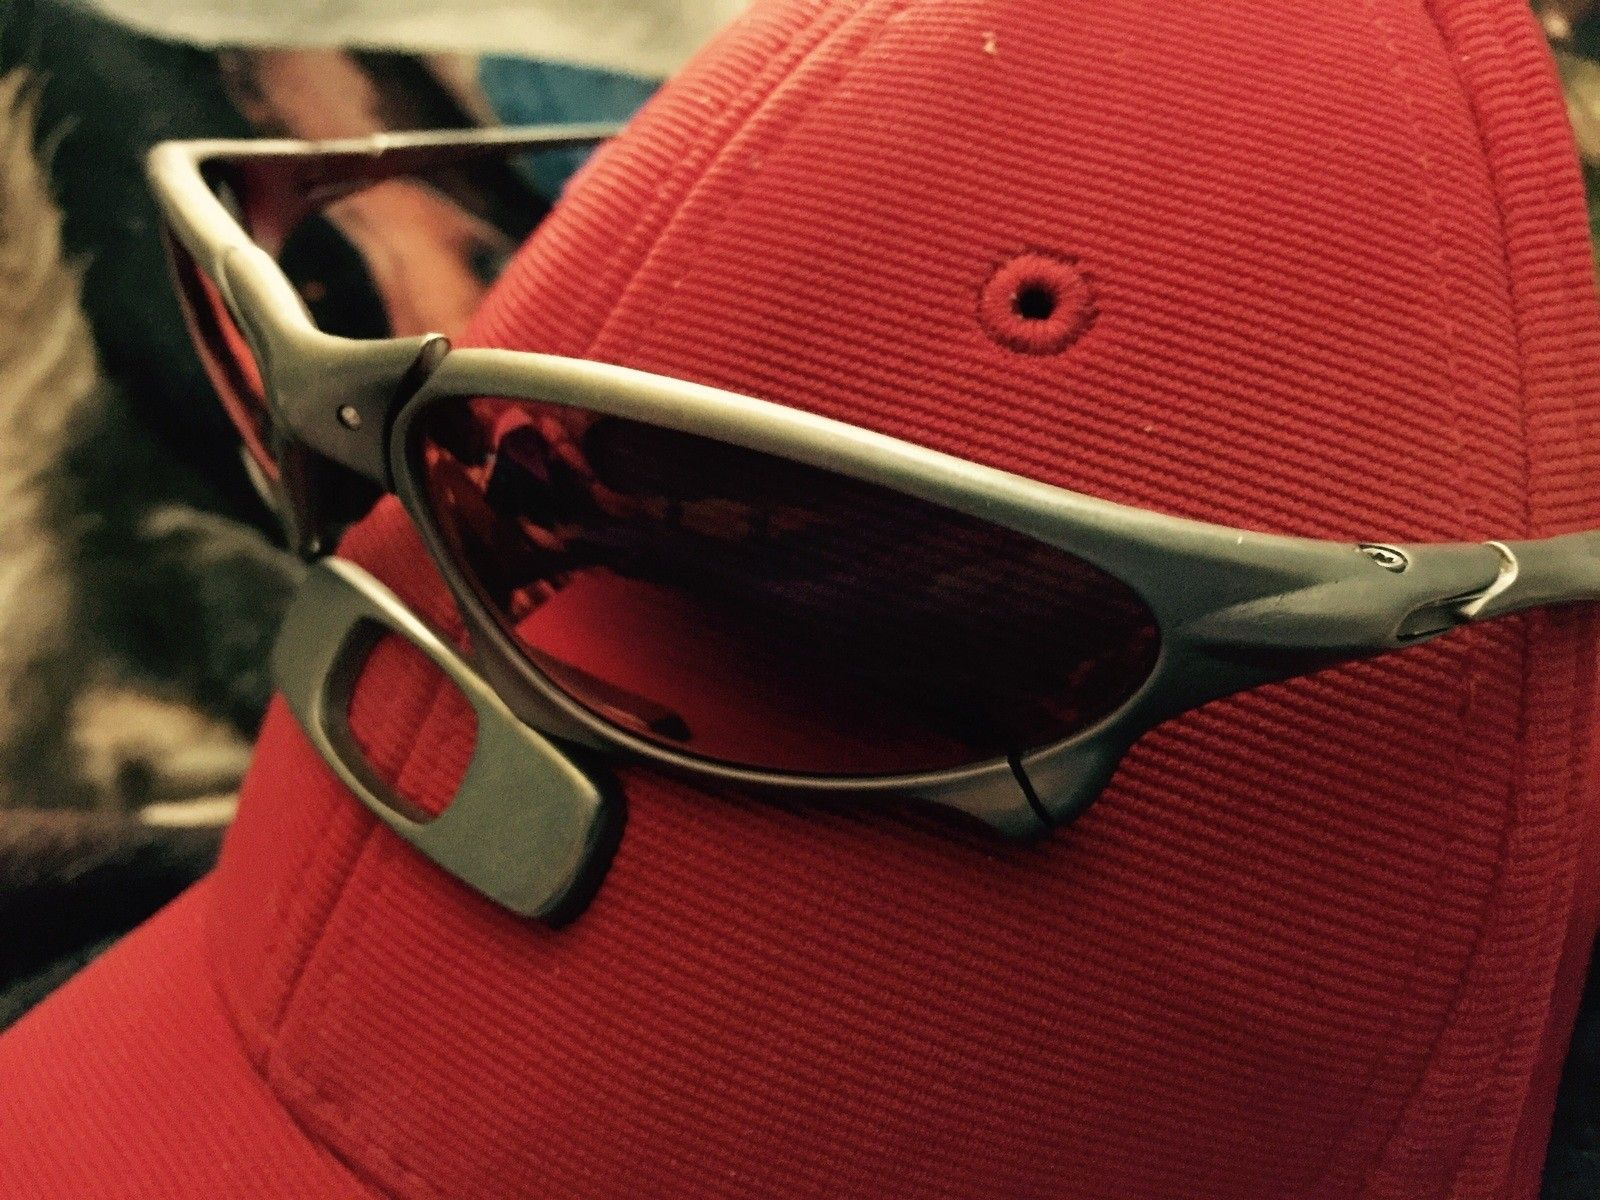 Oakley lenses for pennys - image.jpg